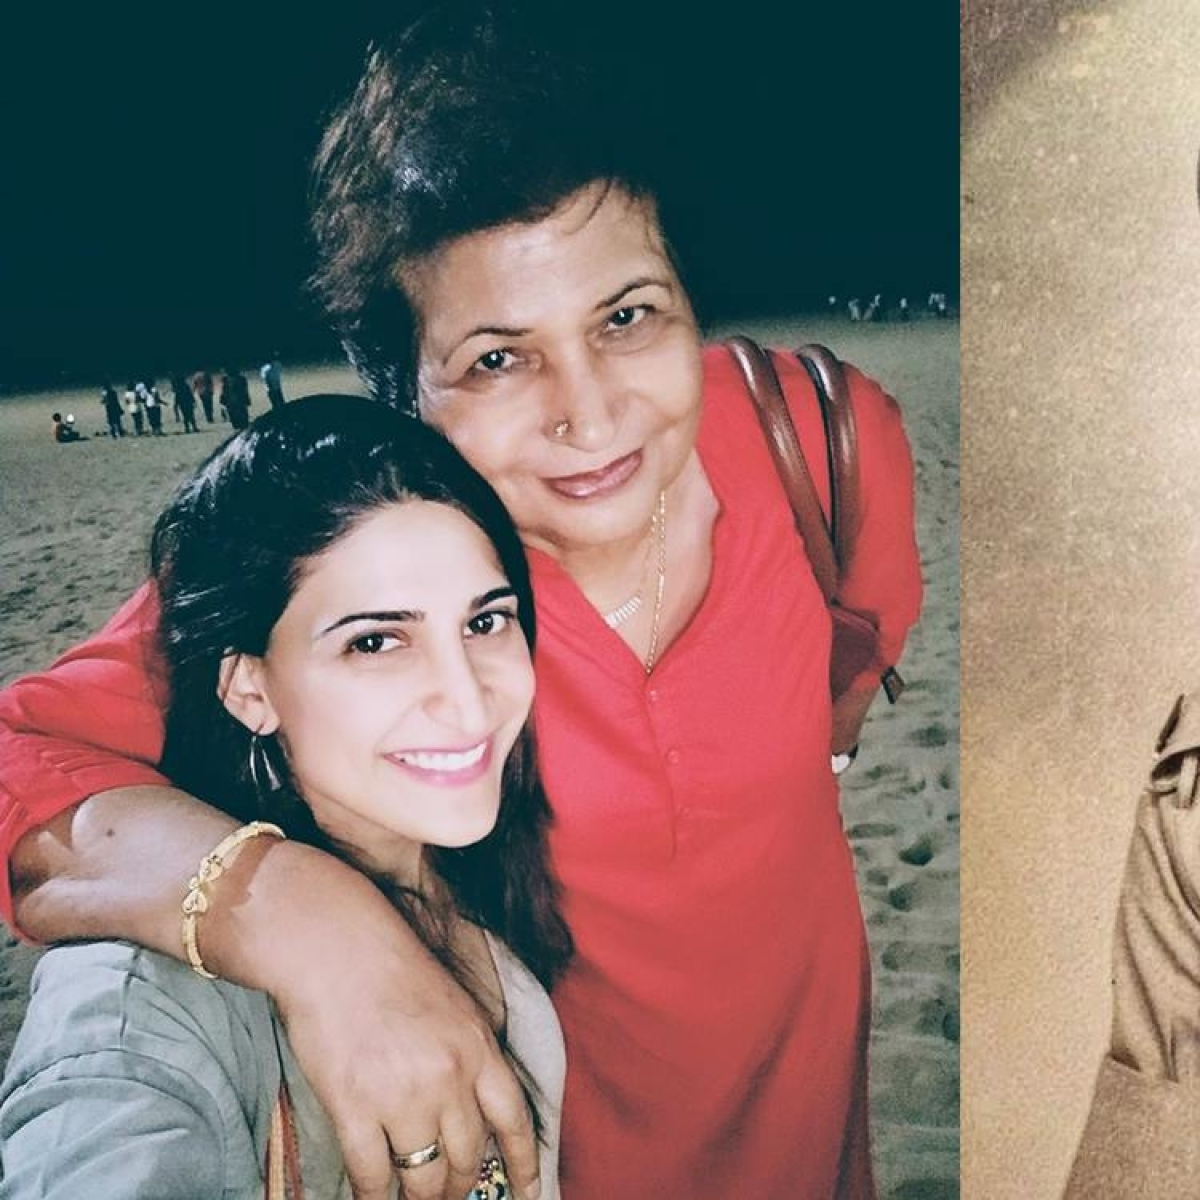 Aahana Kumra's mom, a former cop, scores 90% in her LLB exam at the age of 68